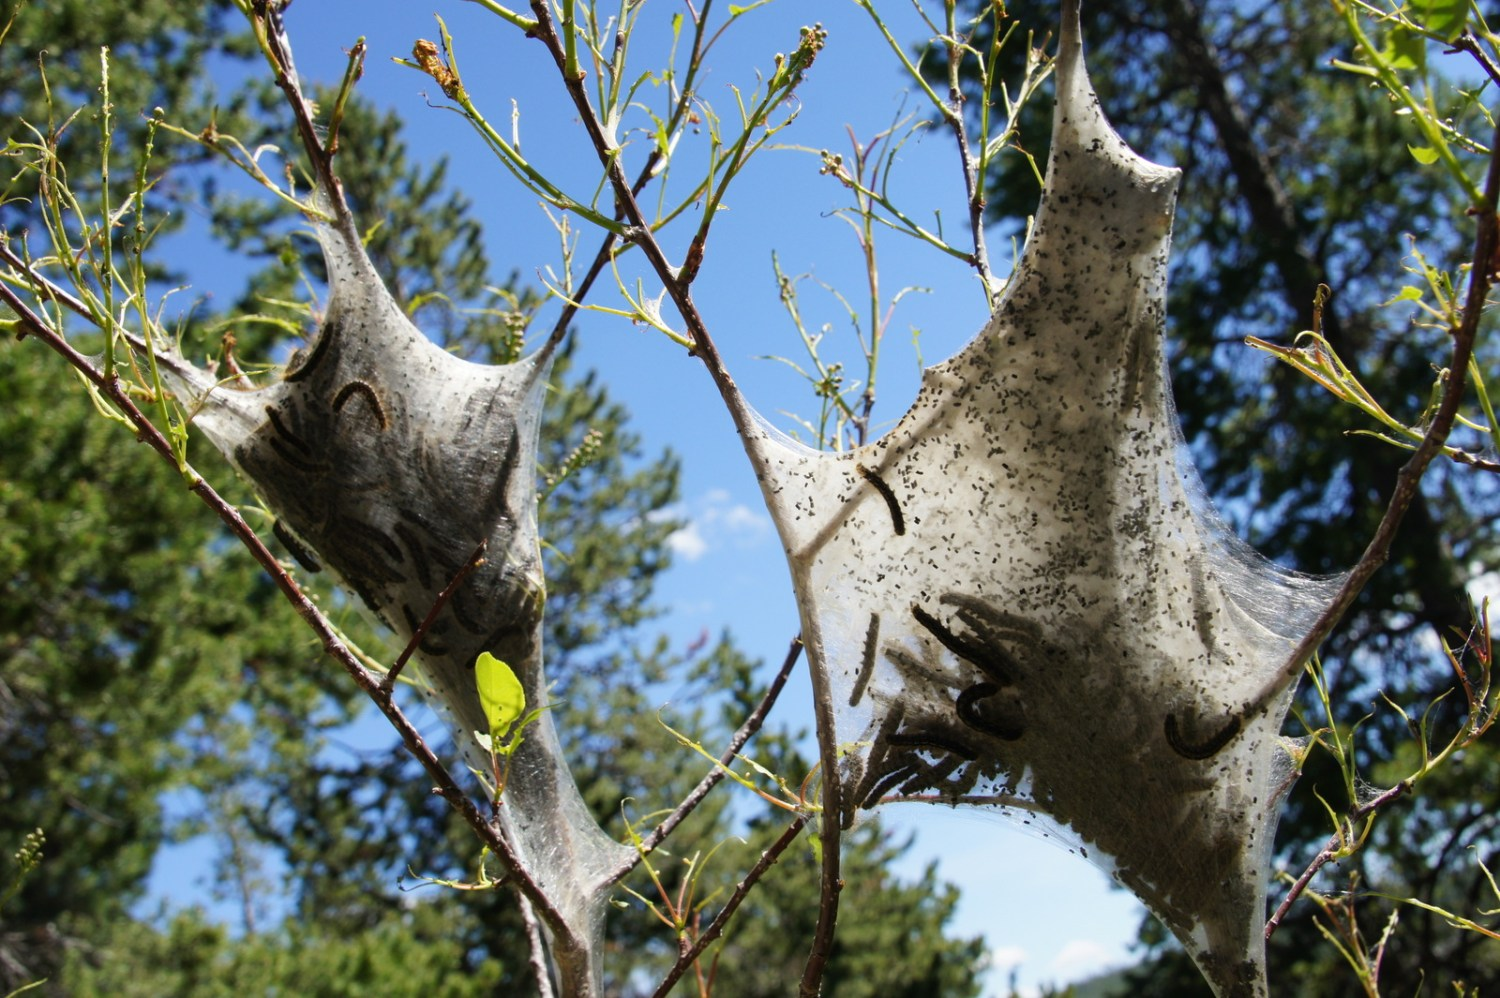 Tent caterpillars building their homes in Yellowstone.